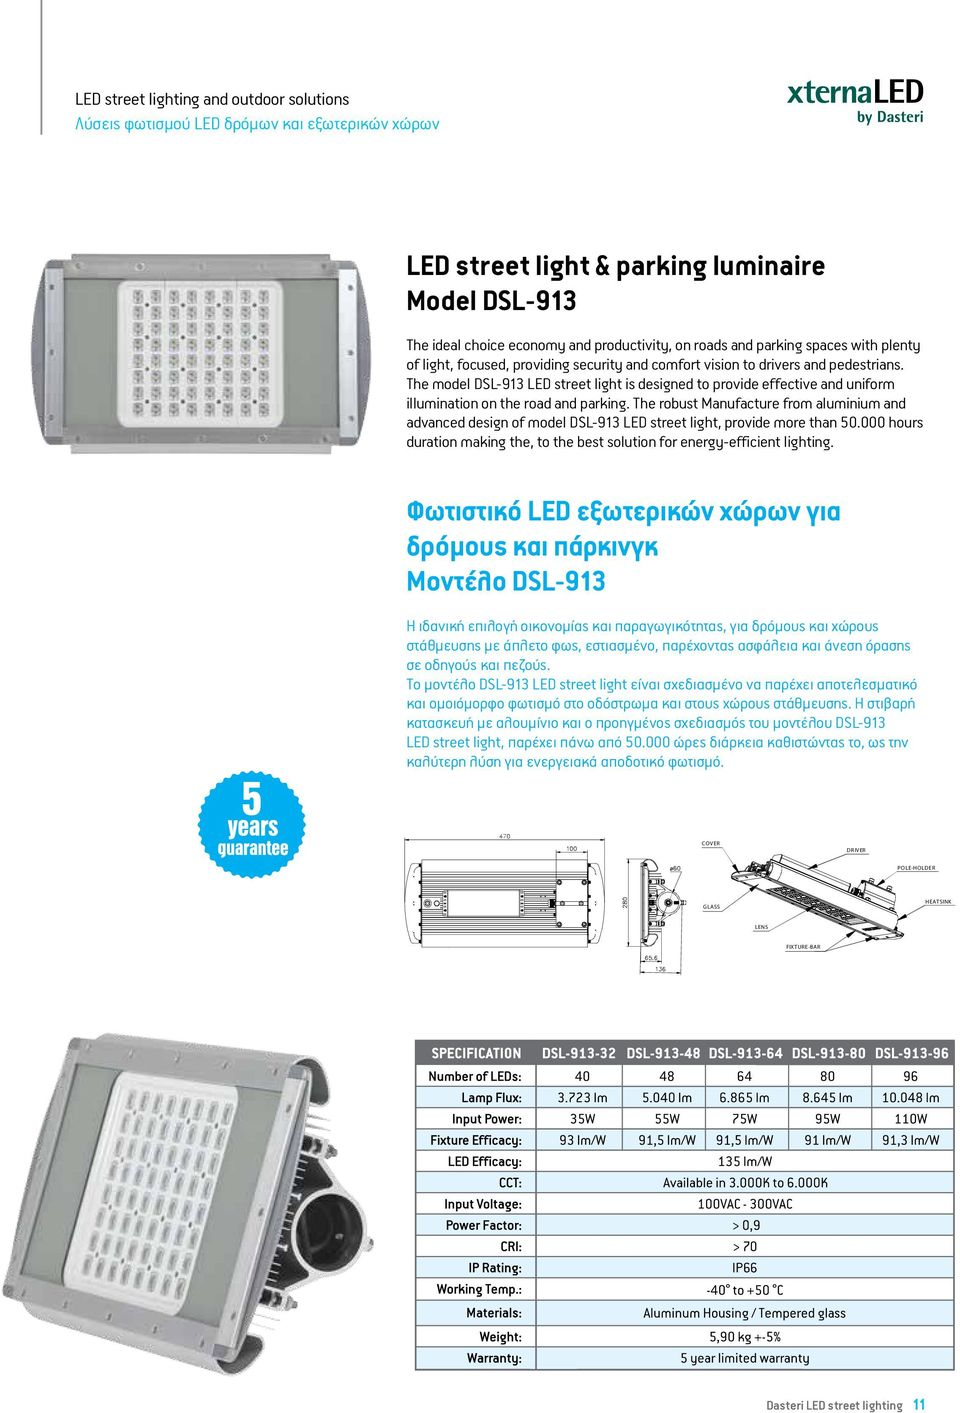 The model DSL-913 LED street light is designed to provide effective and uniform illumination on the road and parking.